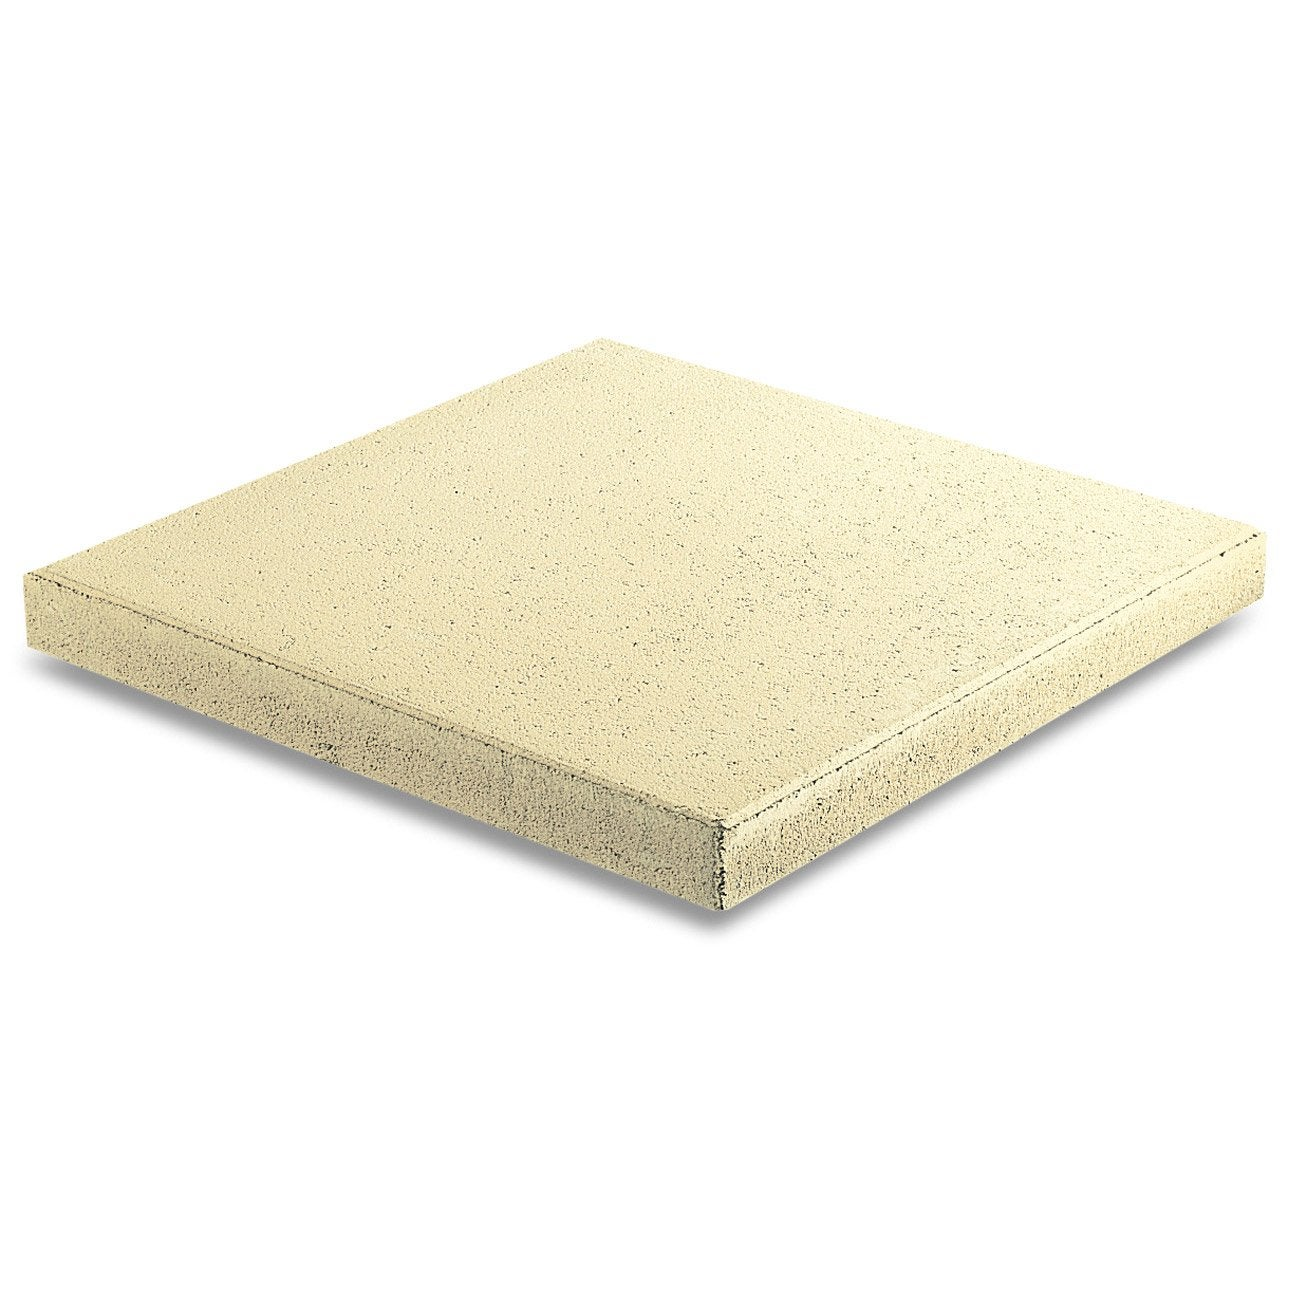 Dalle b ton proven ale paille x cm x mm for Maison en plaque de beton